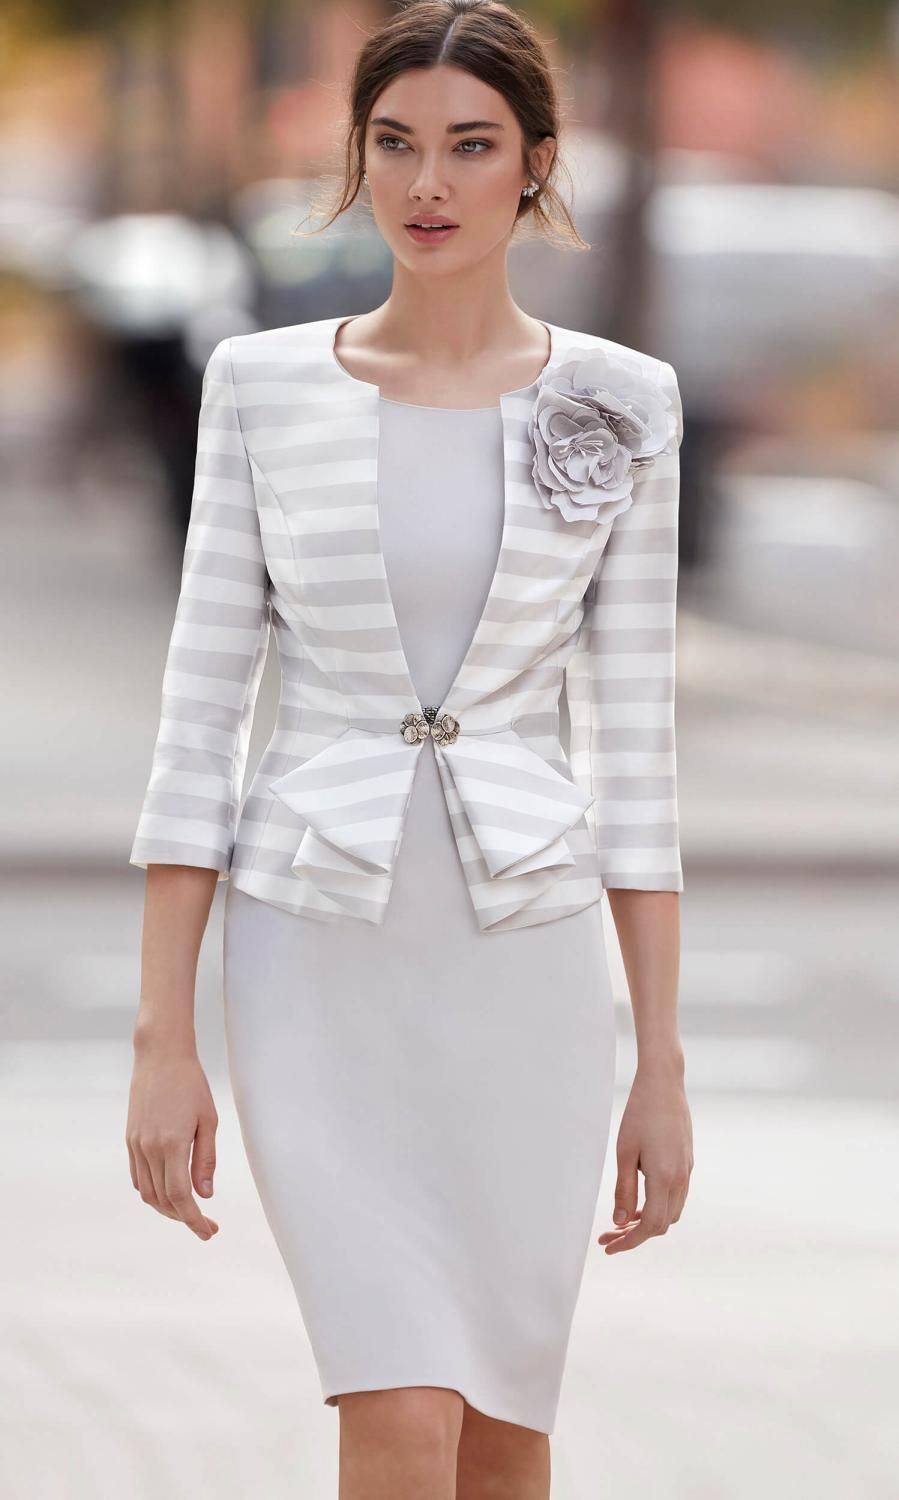 24a2b0b805d83c Carla Ruiz Dress   Jacket 94673 Grey Who says wedding outfits can t be  modern and fashionable  This stunning outfit by Spanish designer Carla Ruiz  features ...